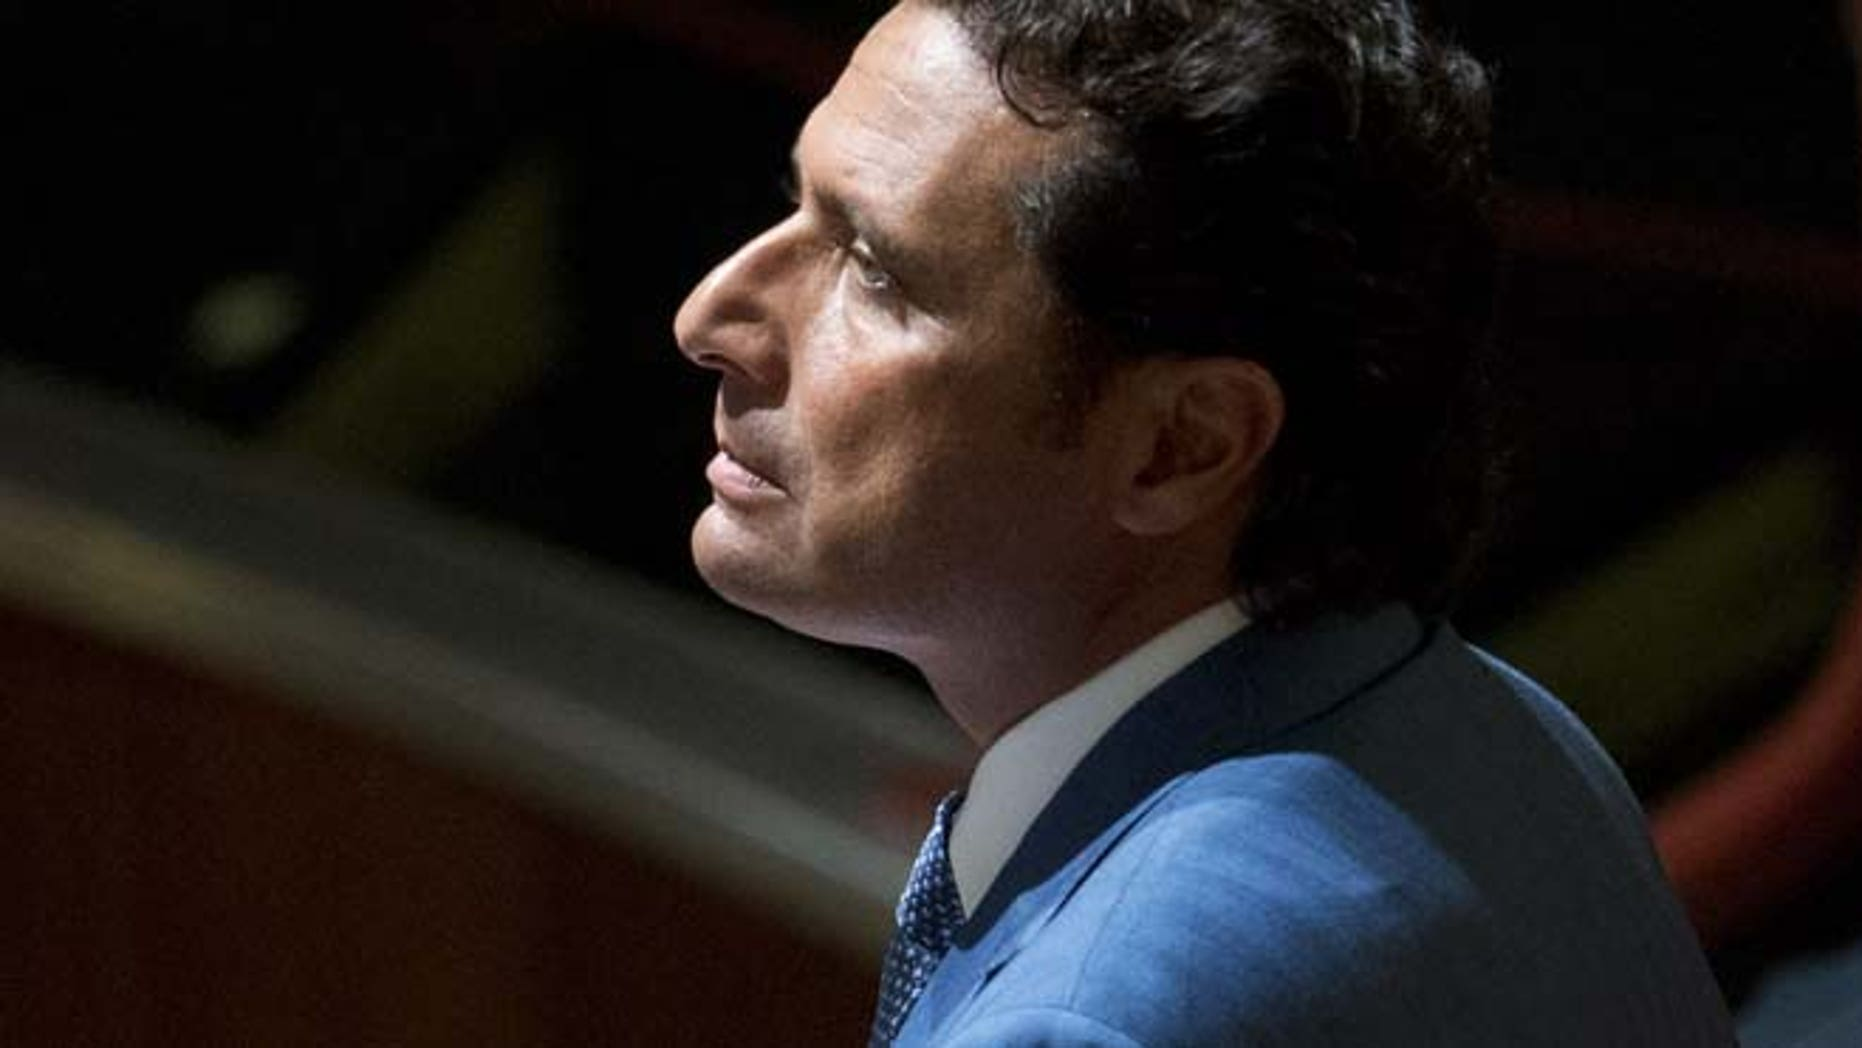 Sept. 24, 2013: In this file photo, Captain Francesco Schettino waits for the arrival of the judges in the court room of the converted Teatro Moderno theater at the end of a pause of his trial, in Grosseto, Italy. (AP)